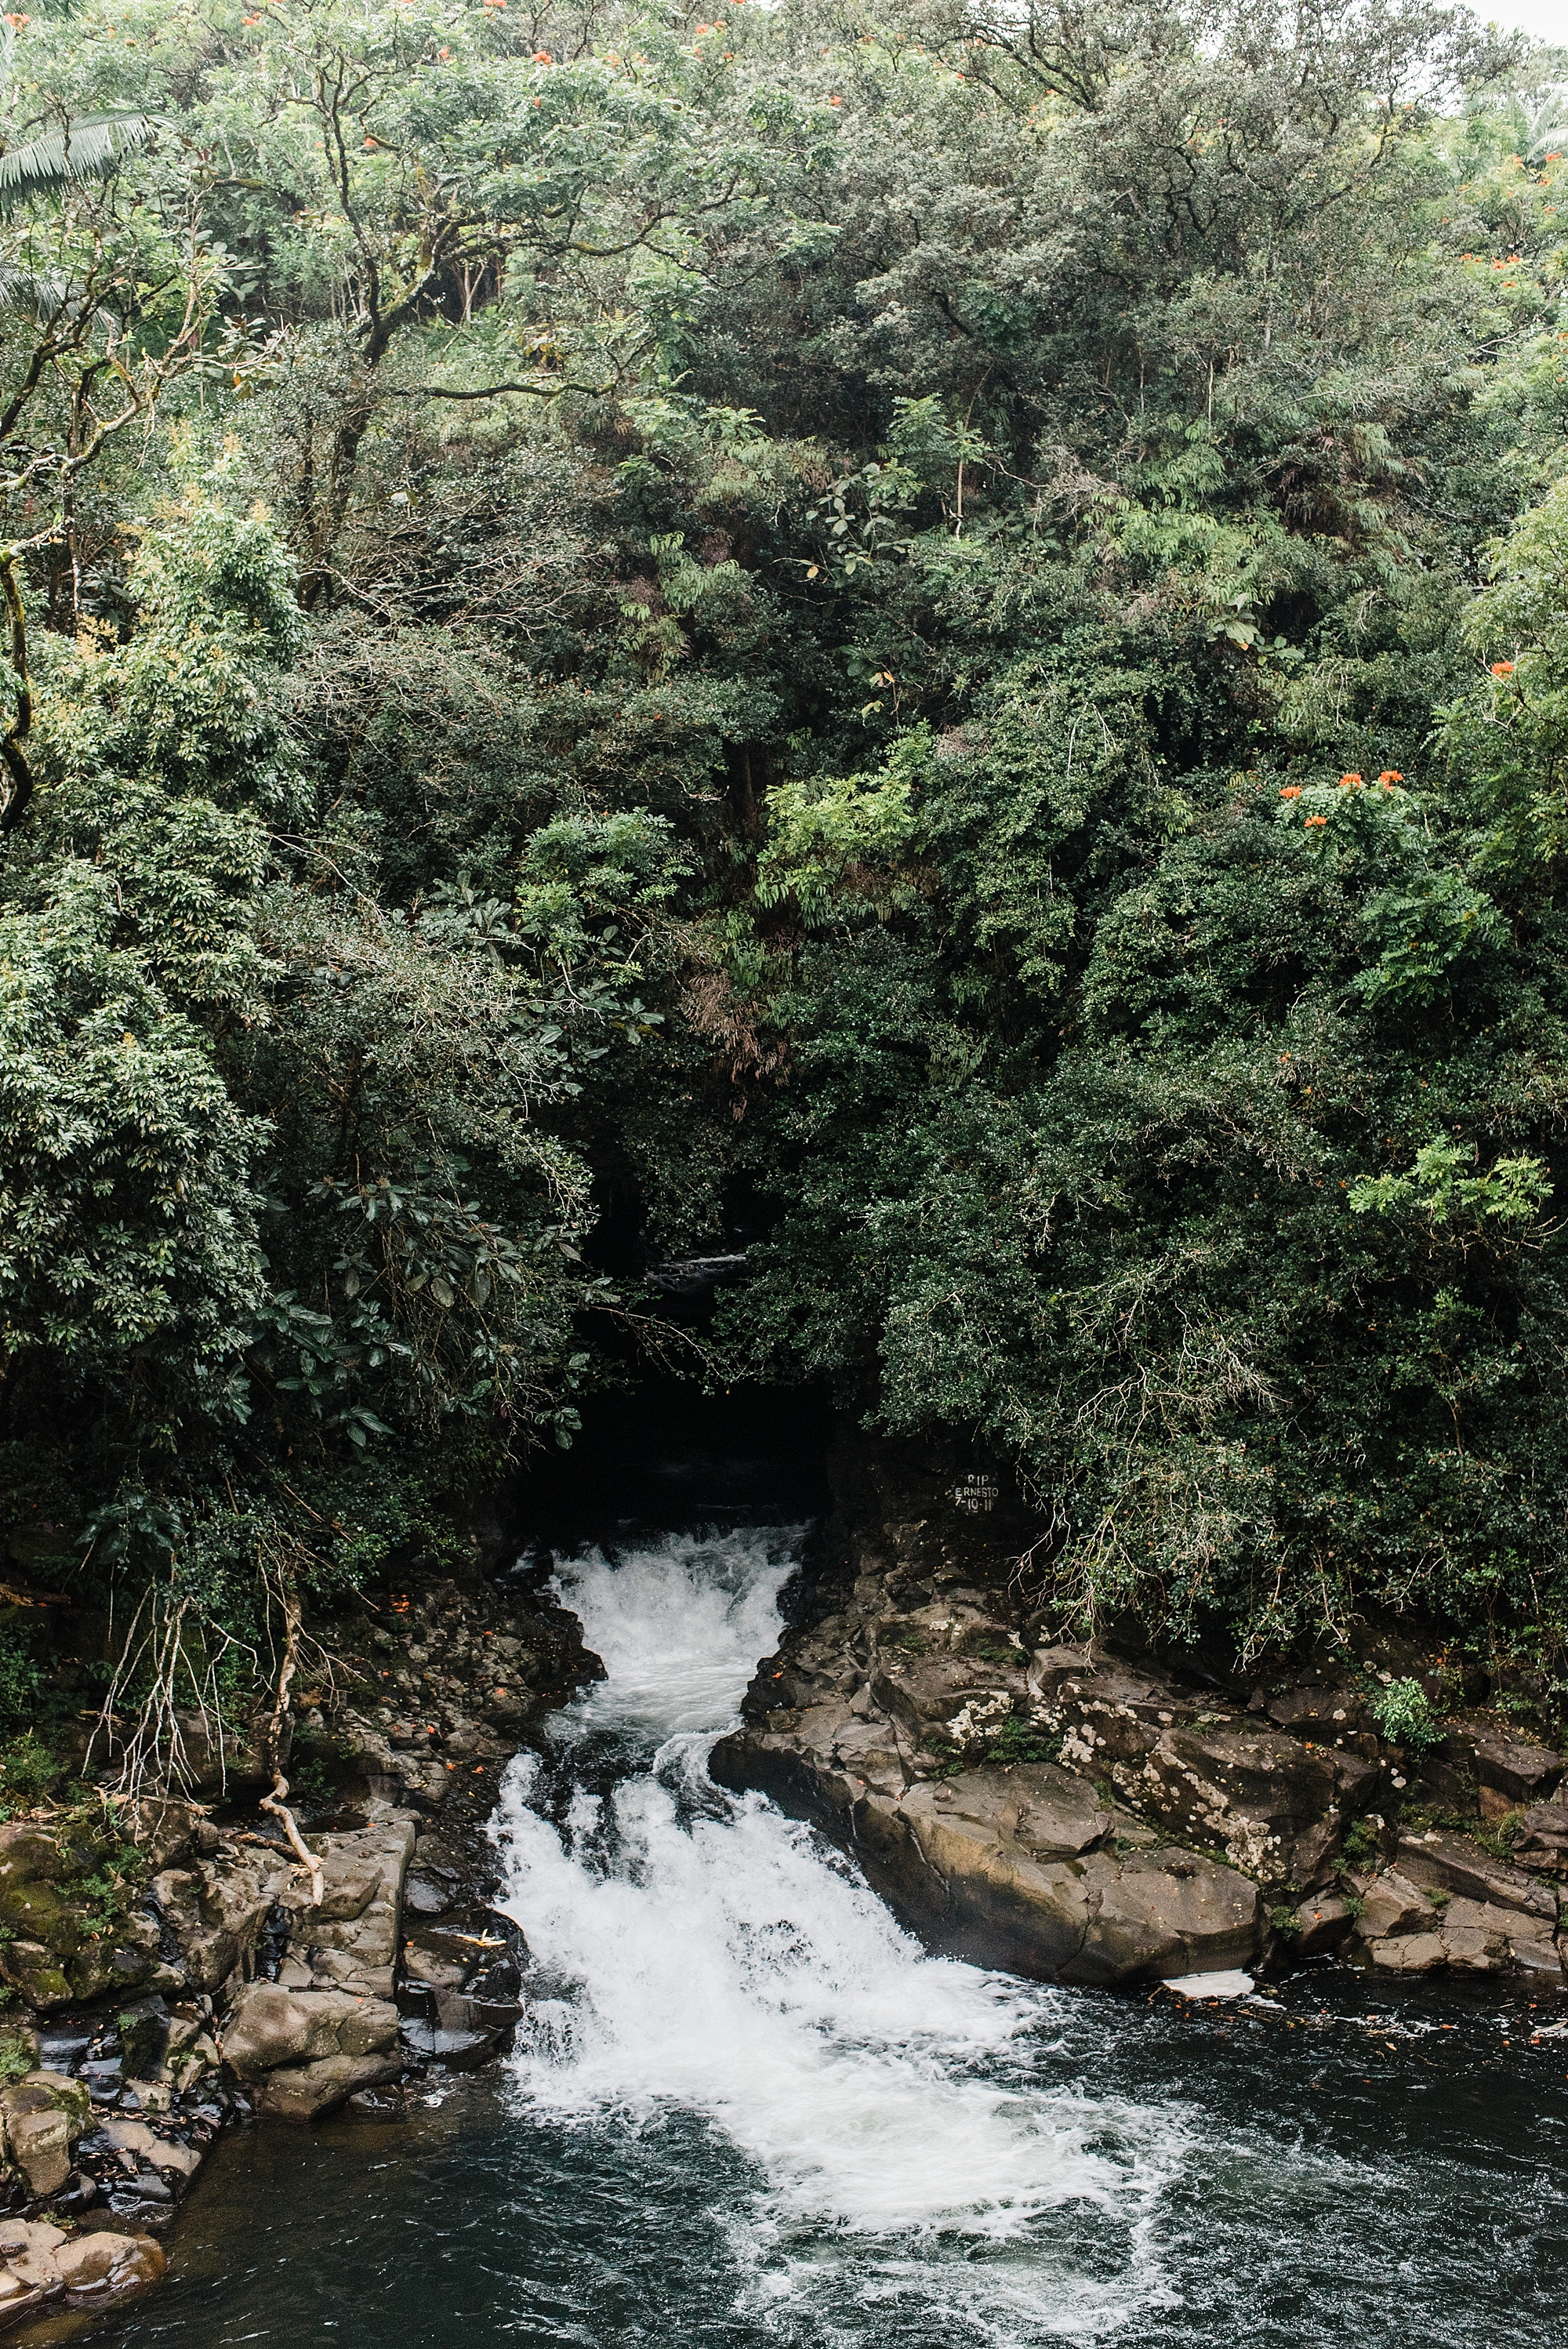 Photo of Kawainui Stream crossing under Old Mamalahoa Highway on the Big Island of Hawaii, taken by Laura Lango of Forthright Photo